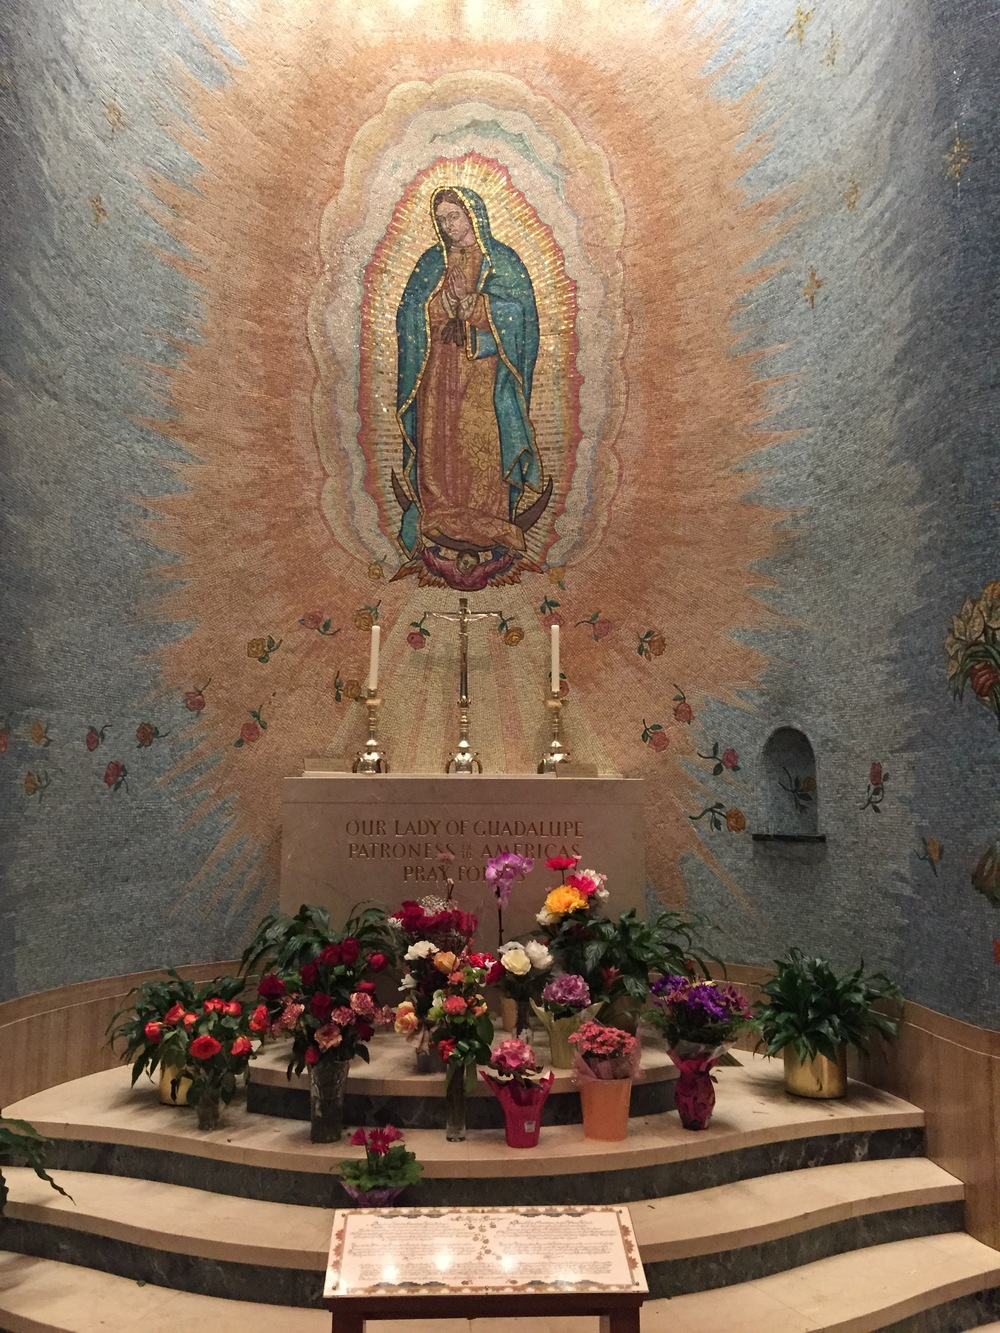 Our Lady of Guadalupe shrine in the Basilica of the National Shrine of the Immaculate Conception.